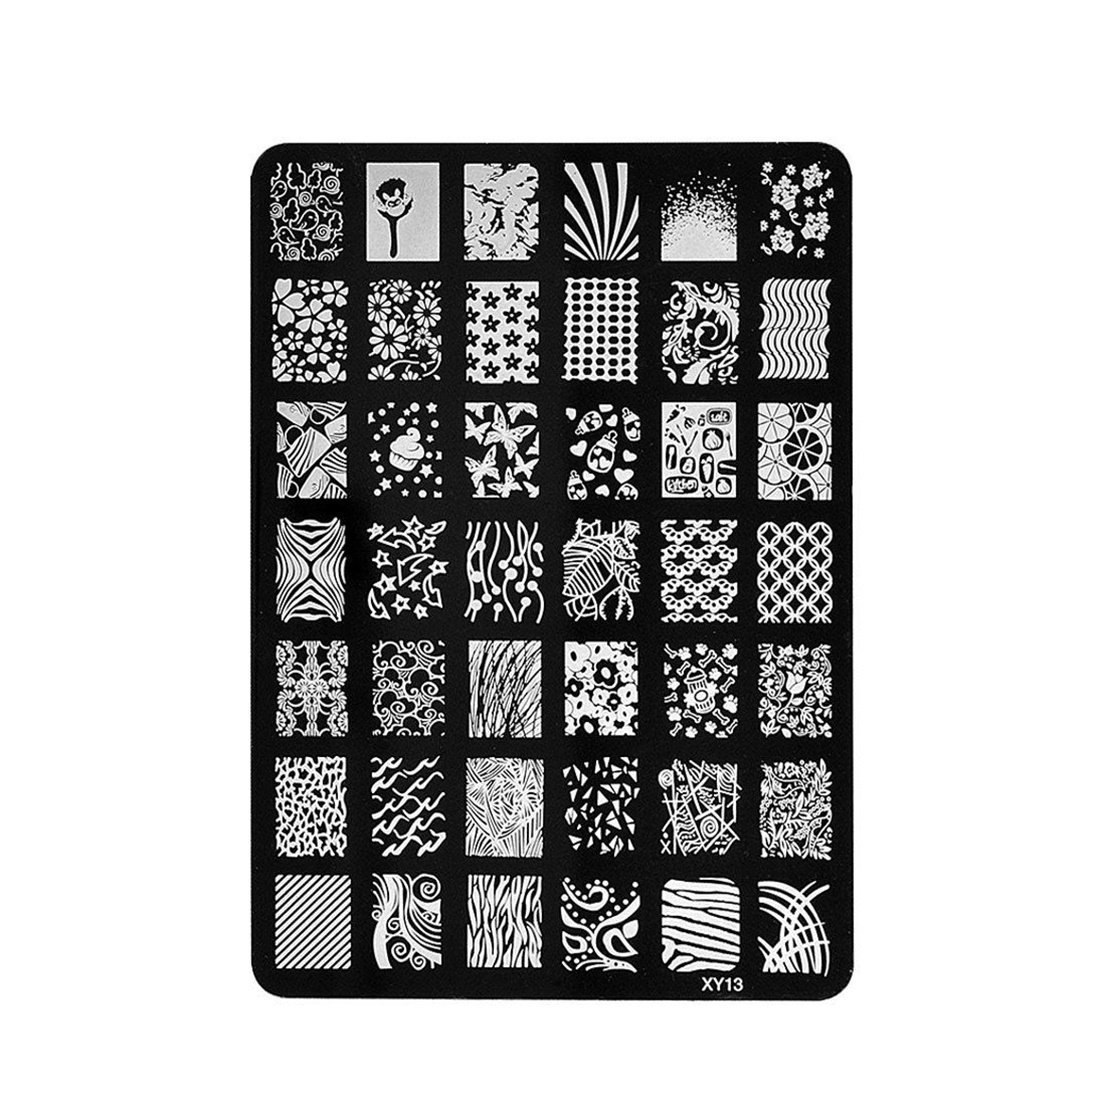 1 Pc First Class Popular New Nail Art Stamping Steel Acrylic Manicure Kits Printing Plates Model Patterns XY-03